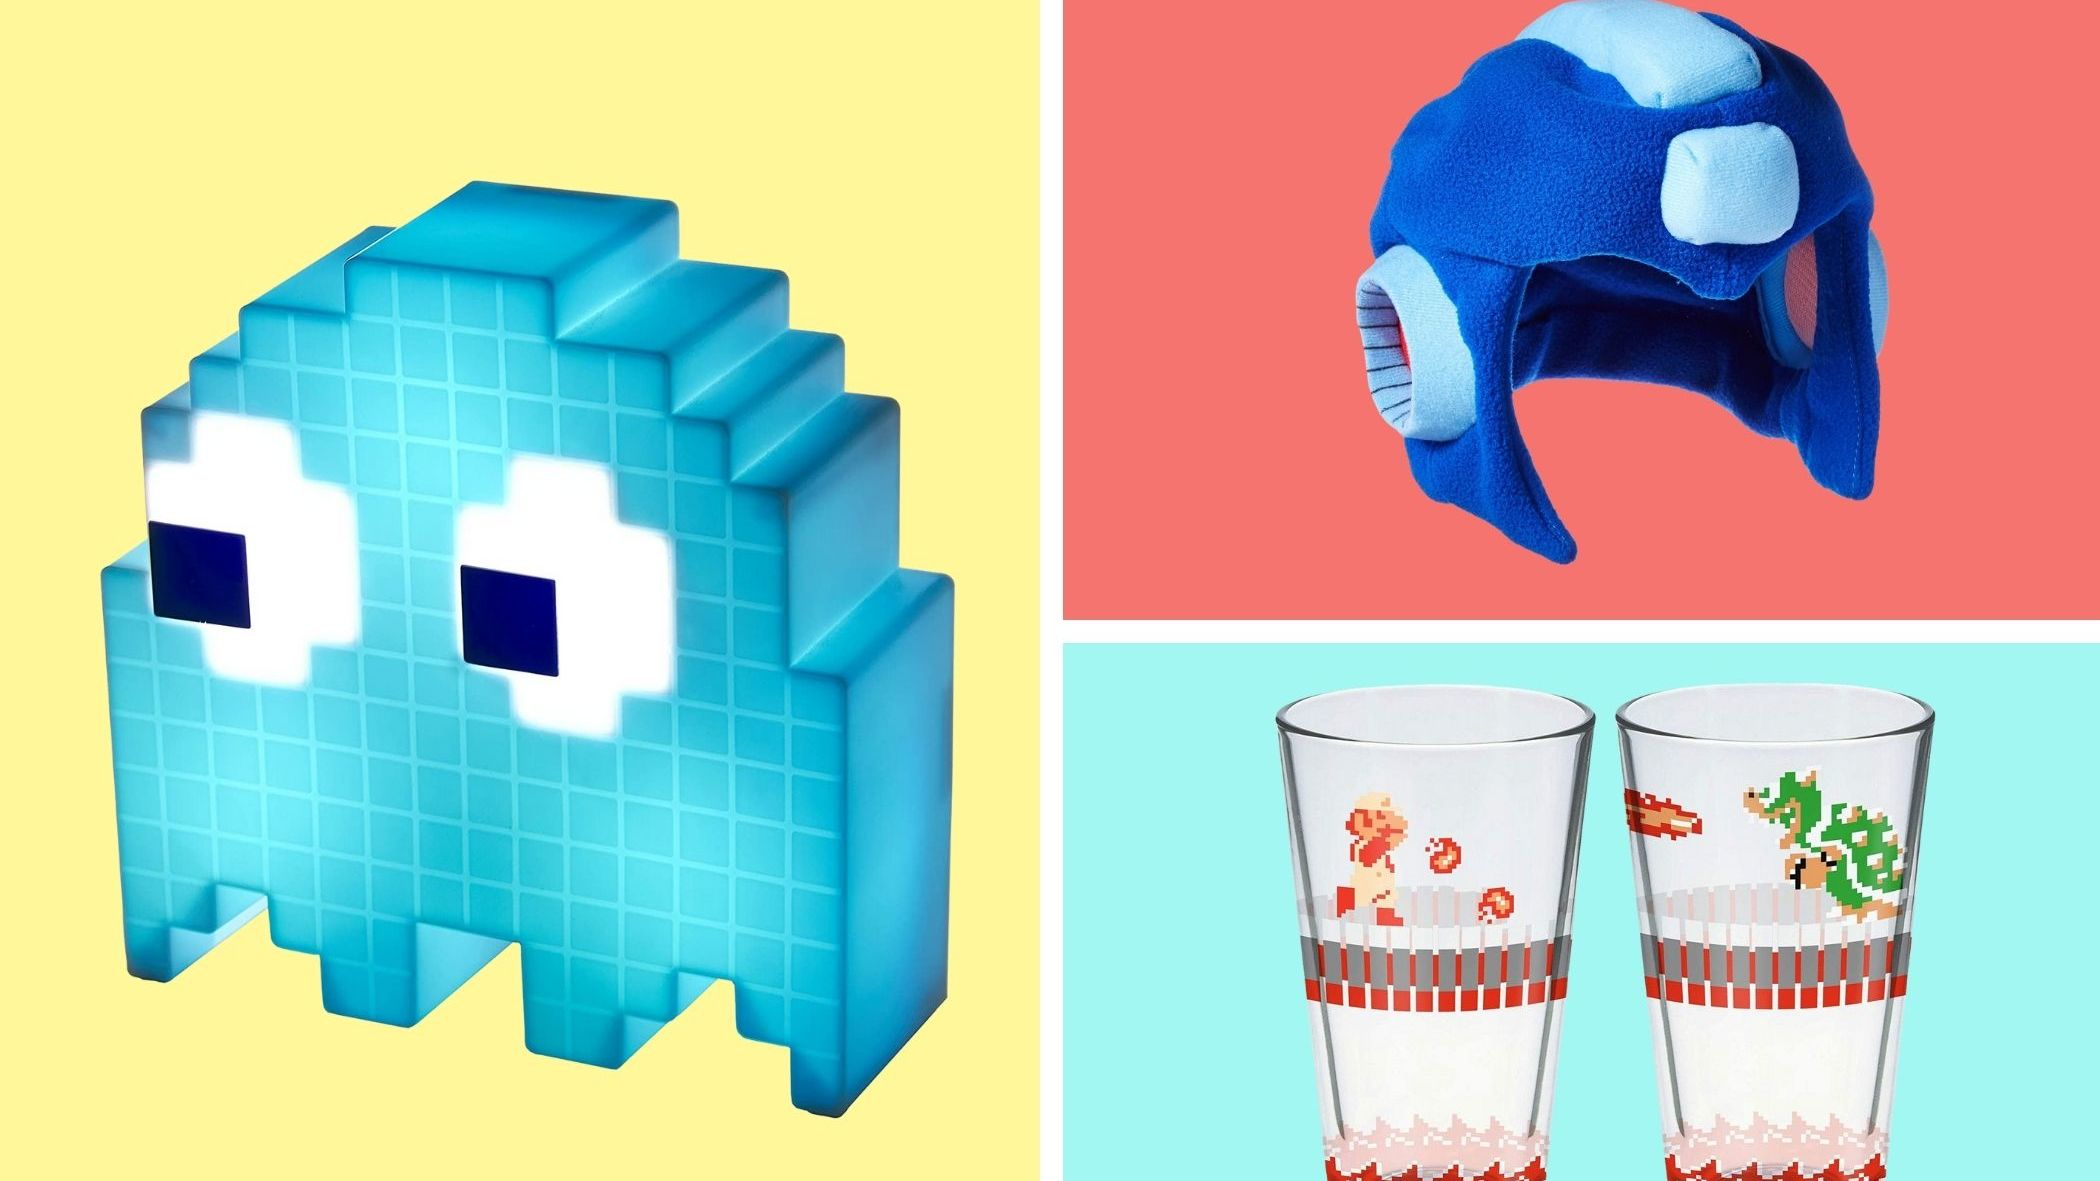 Level Up With These 11 Awesome Products for Retro Gamers